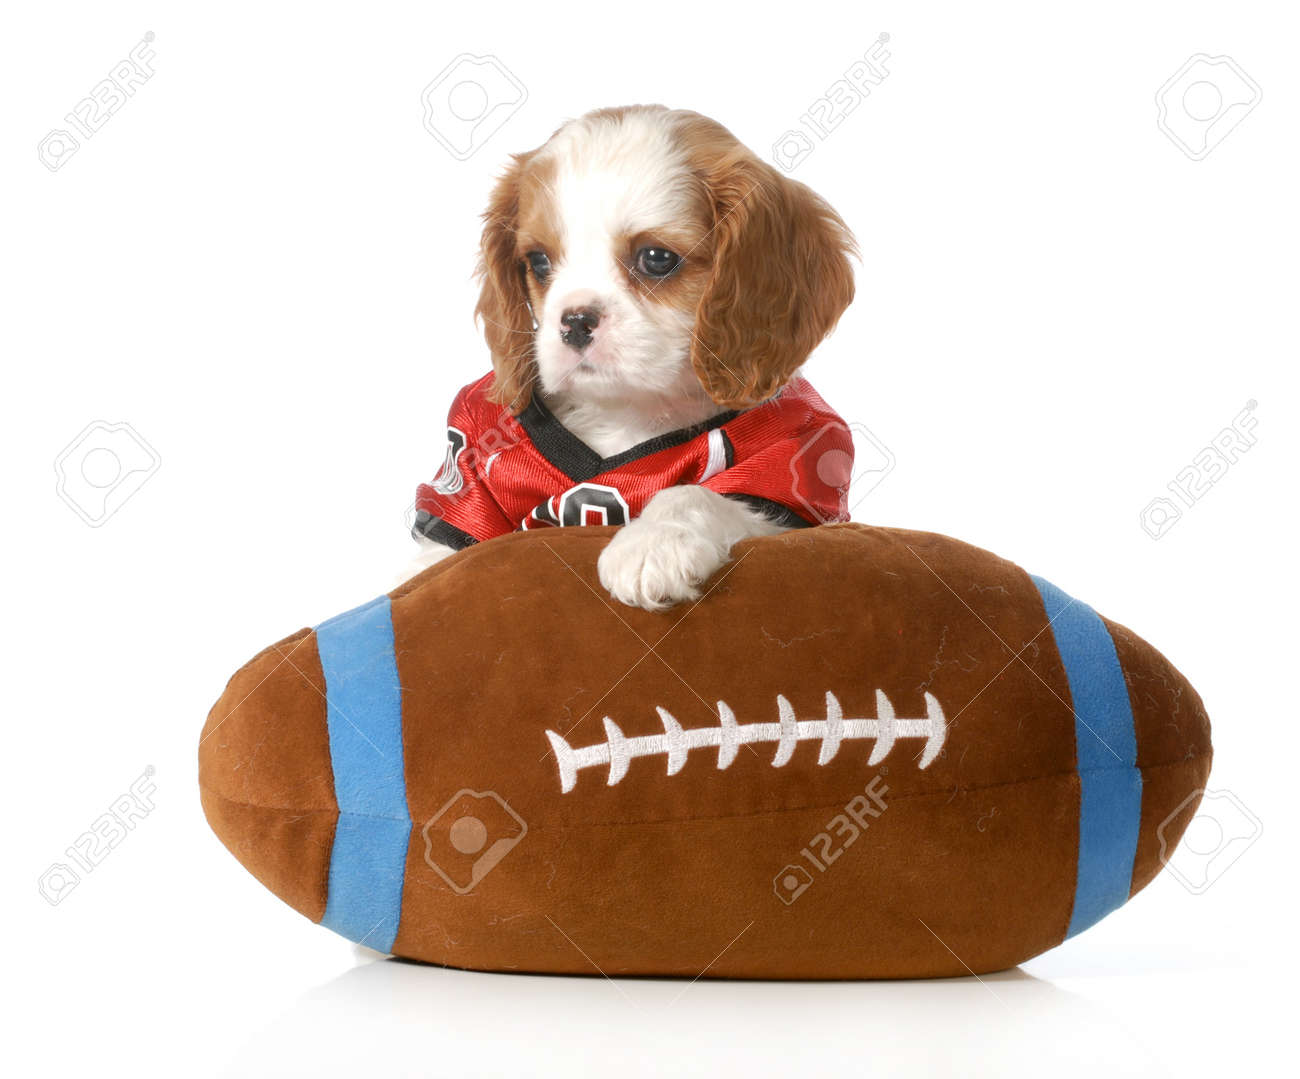 Download Cavalier Brown Adorable Dog - 20310164-sports-hound-cute-cavalier-king-charles-spaniel-puppy-dressed-up-like-a-football-player-with-stuffed  Pictures_92237  .jpg